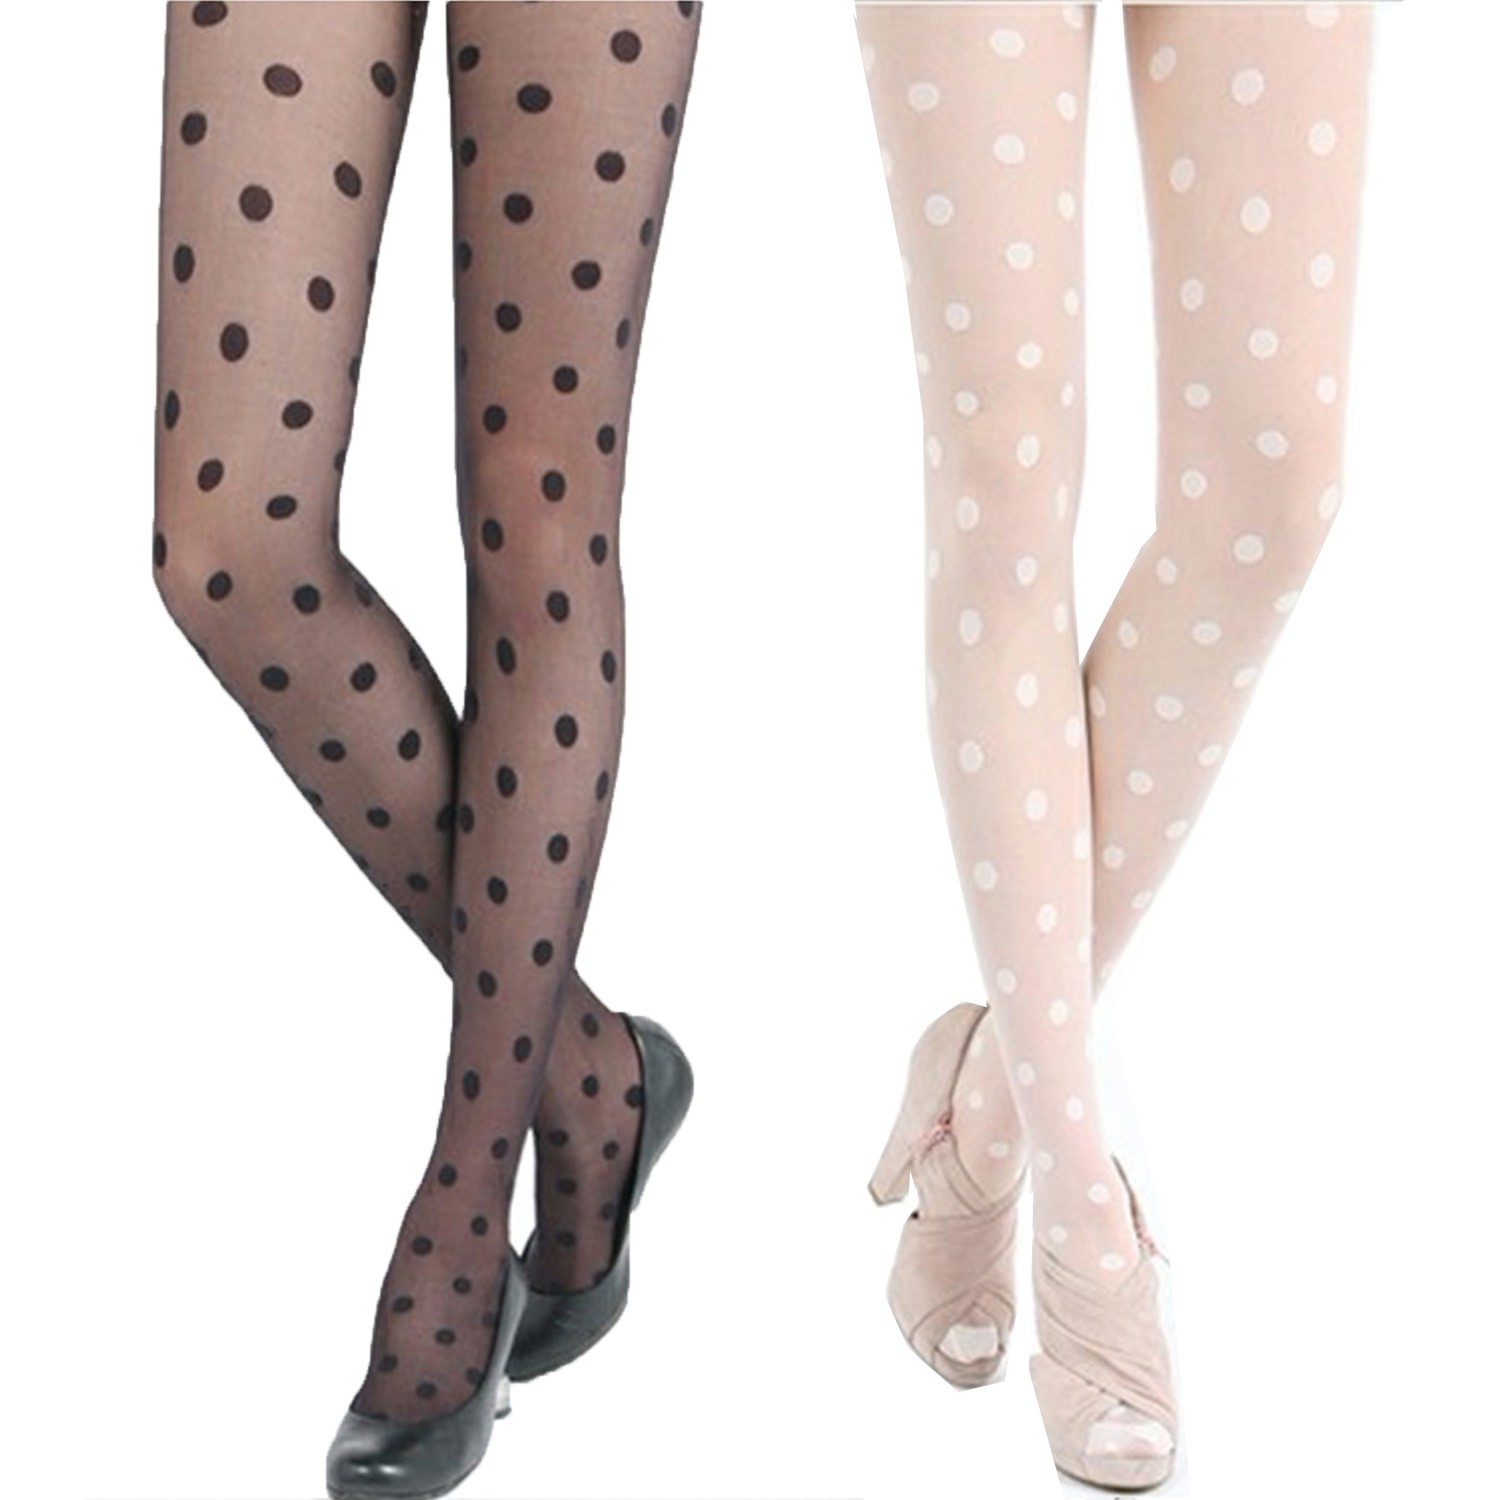 Polka Dot Sheer Pantyhose Tights - A858#